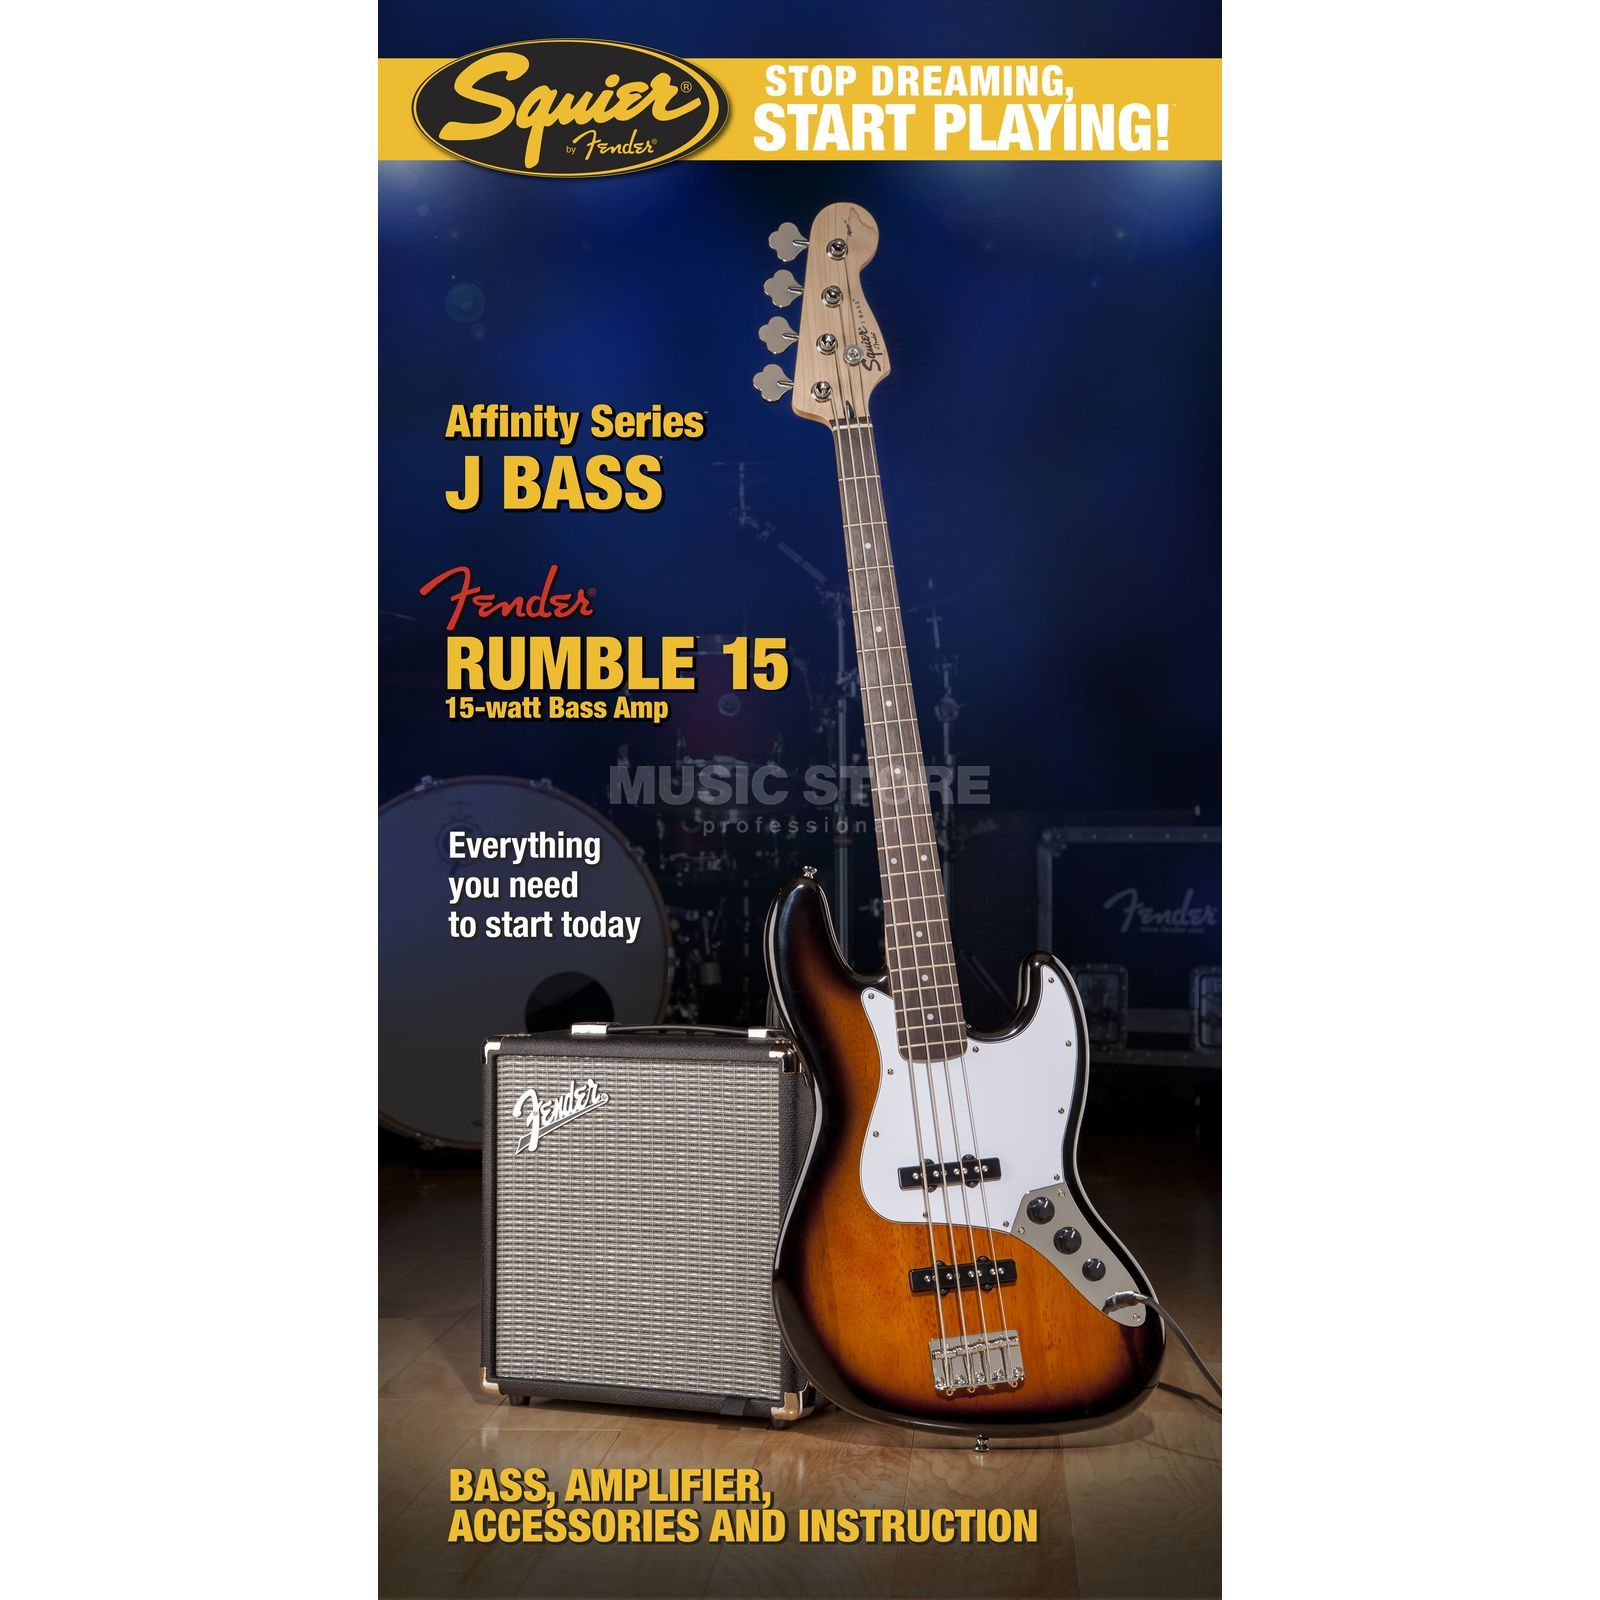 Fender Squier Affinity J-Bass+Rumble15 Pack Brown Sunburst Product Image